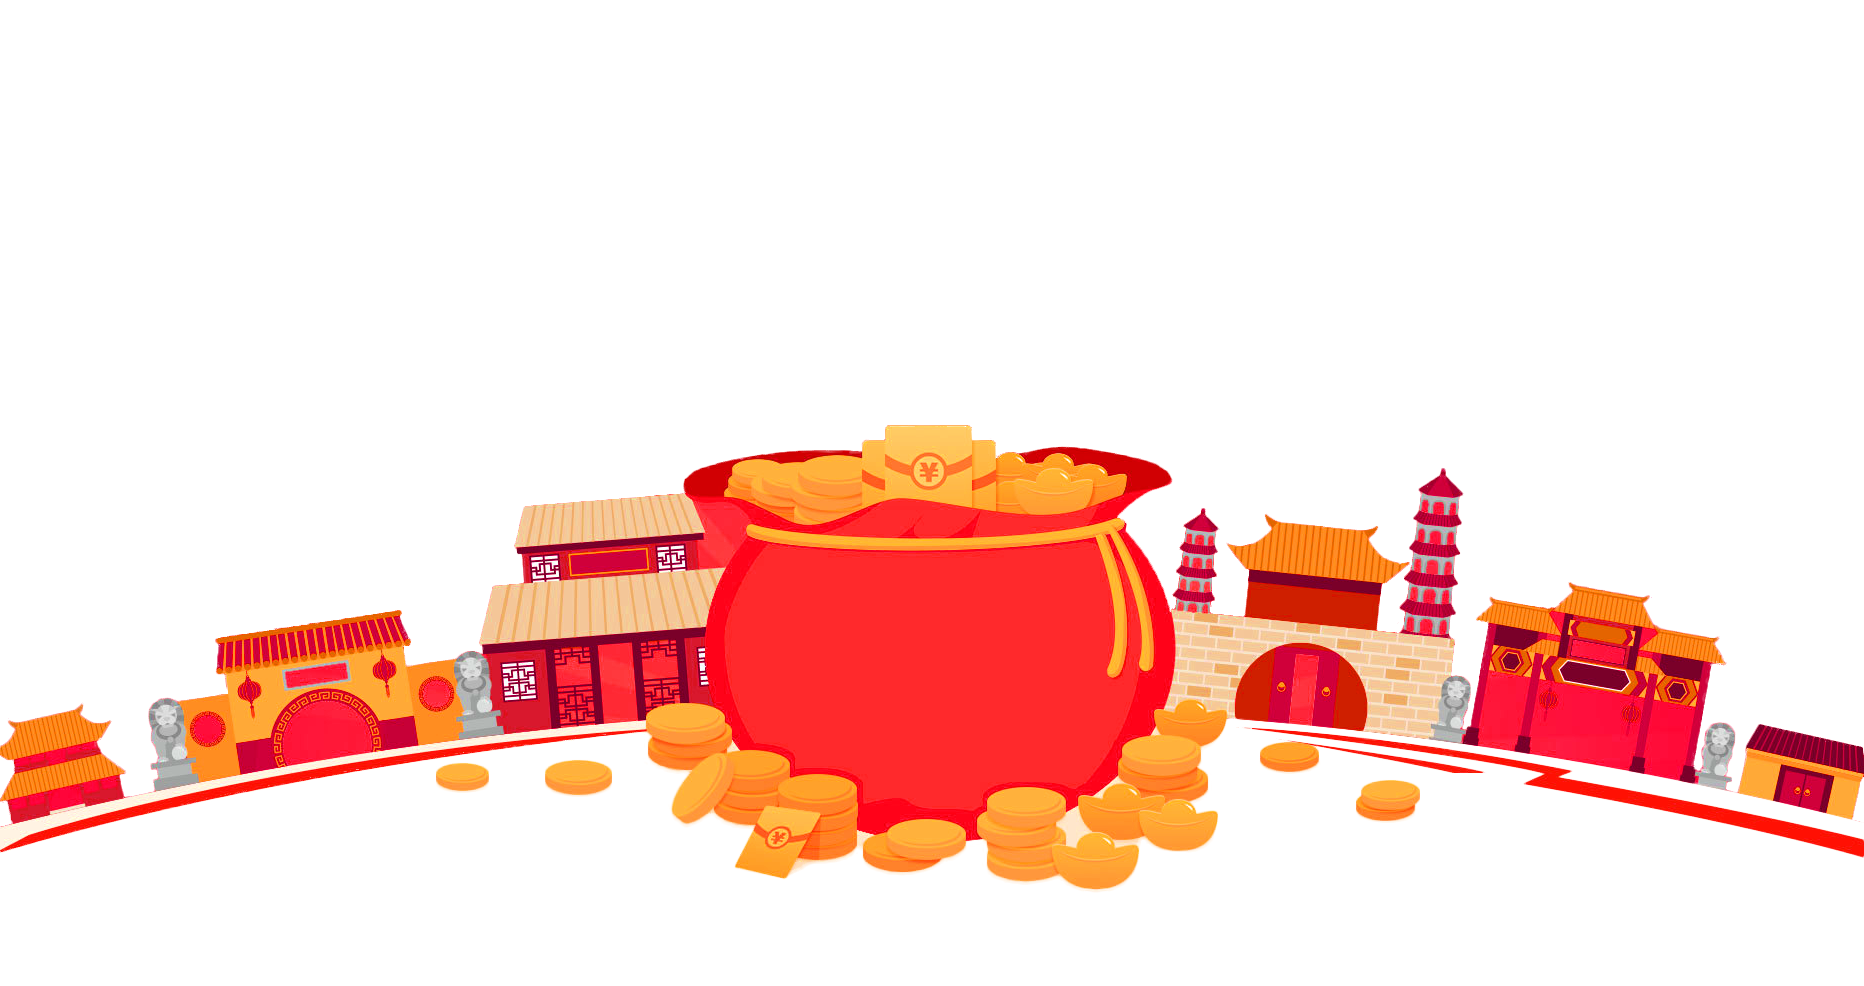 Wallet clipart small purse. Service chinese new year